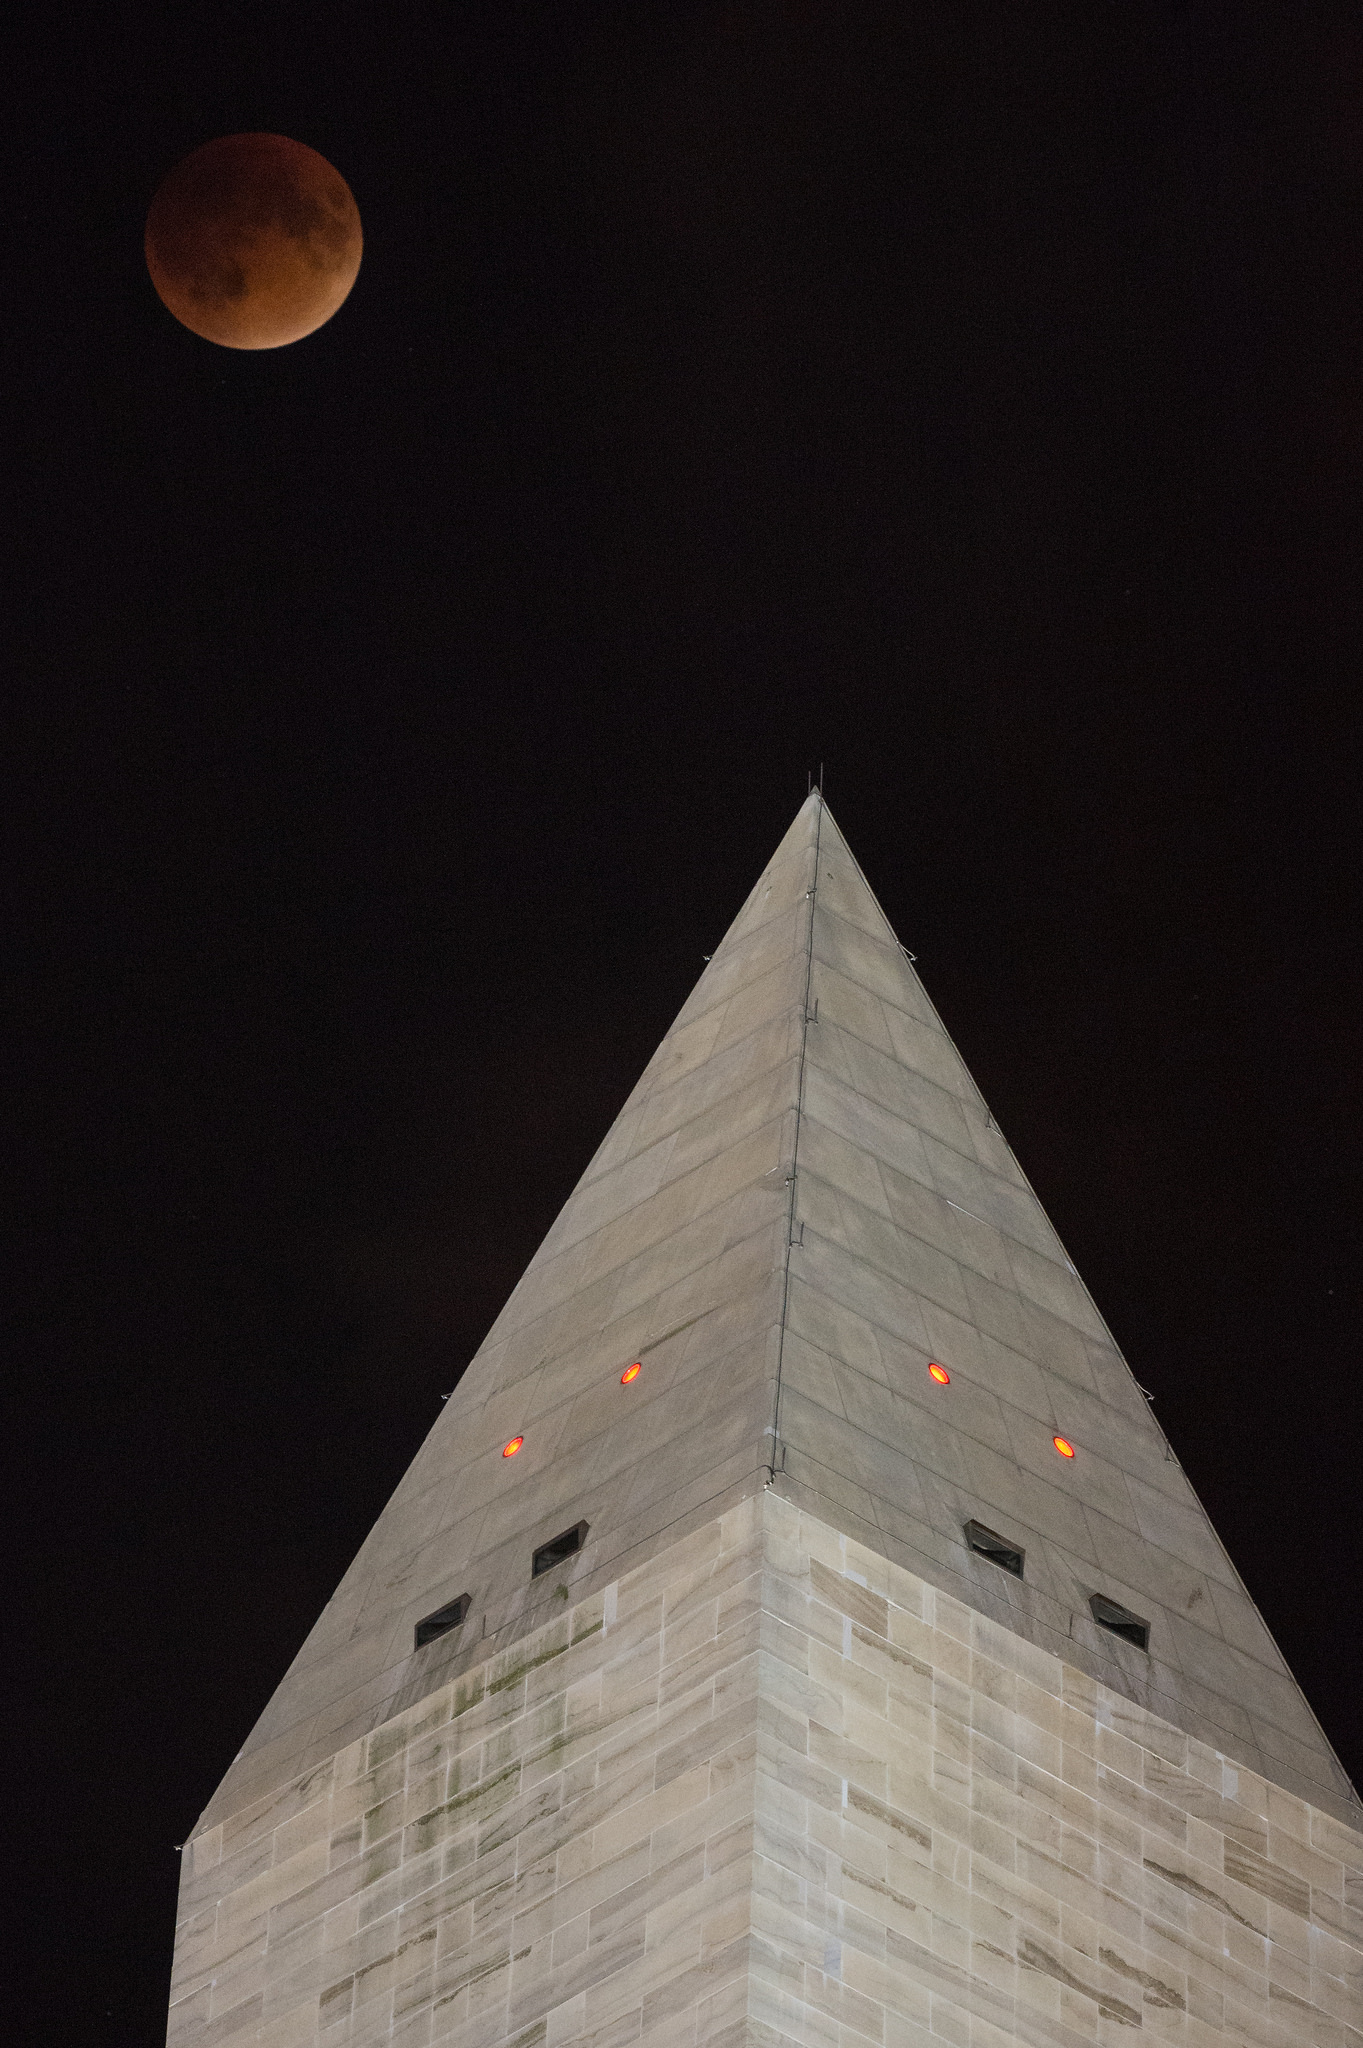 Supermoon Lunar Eclipse Over Washington Monument